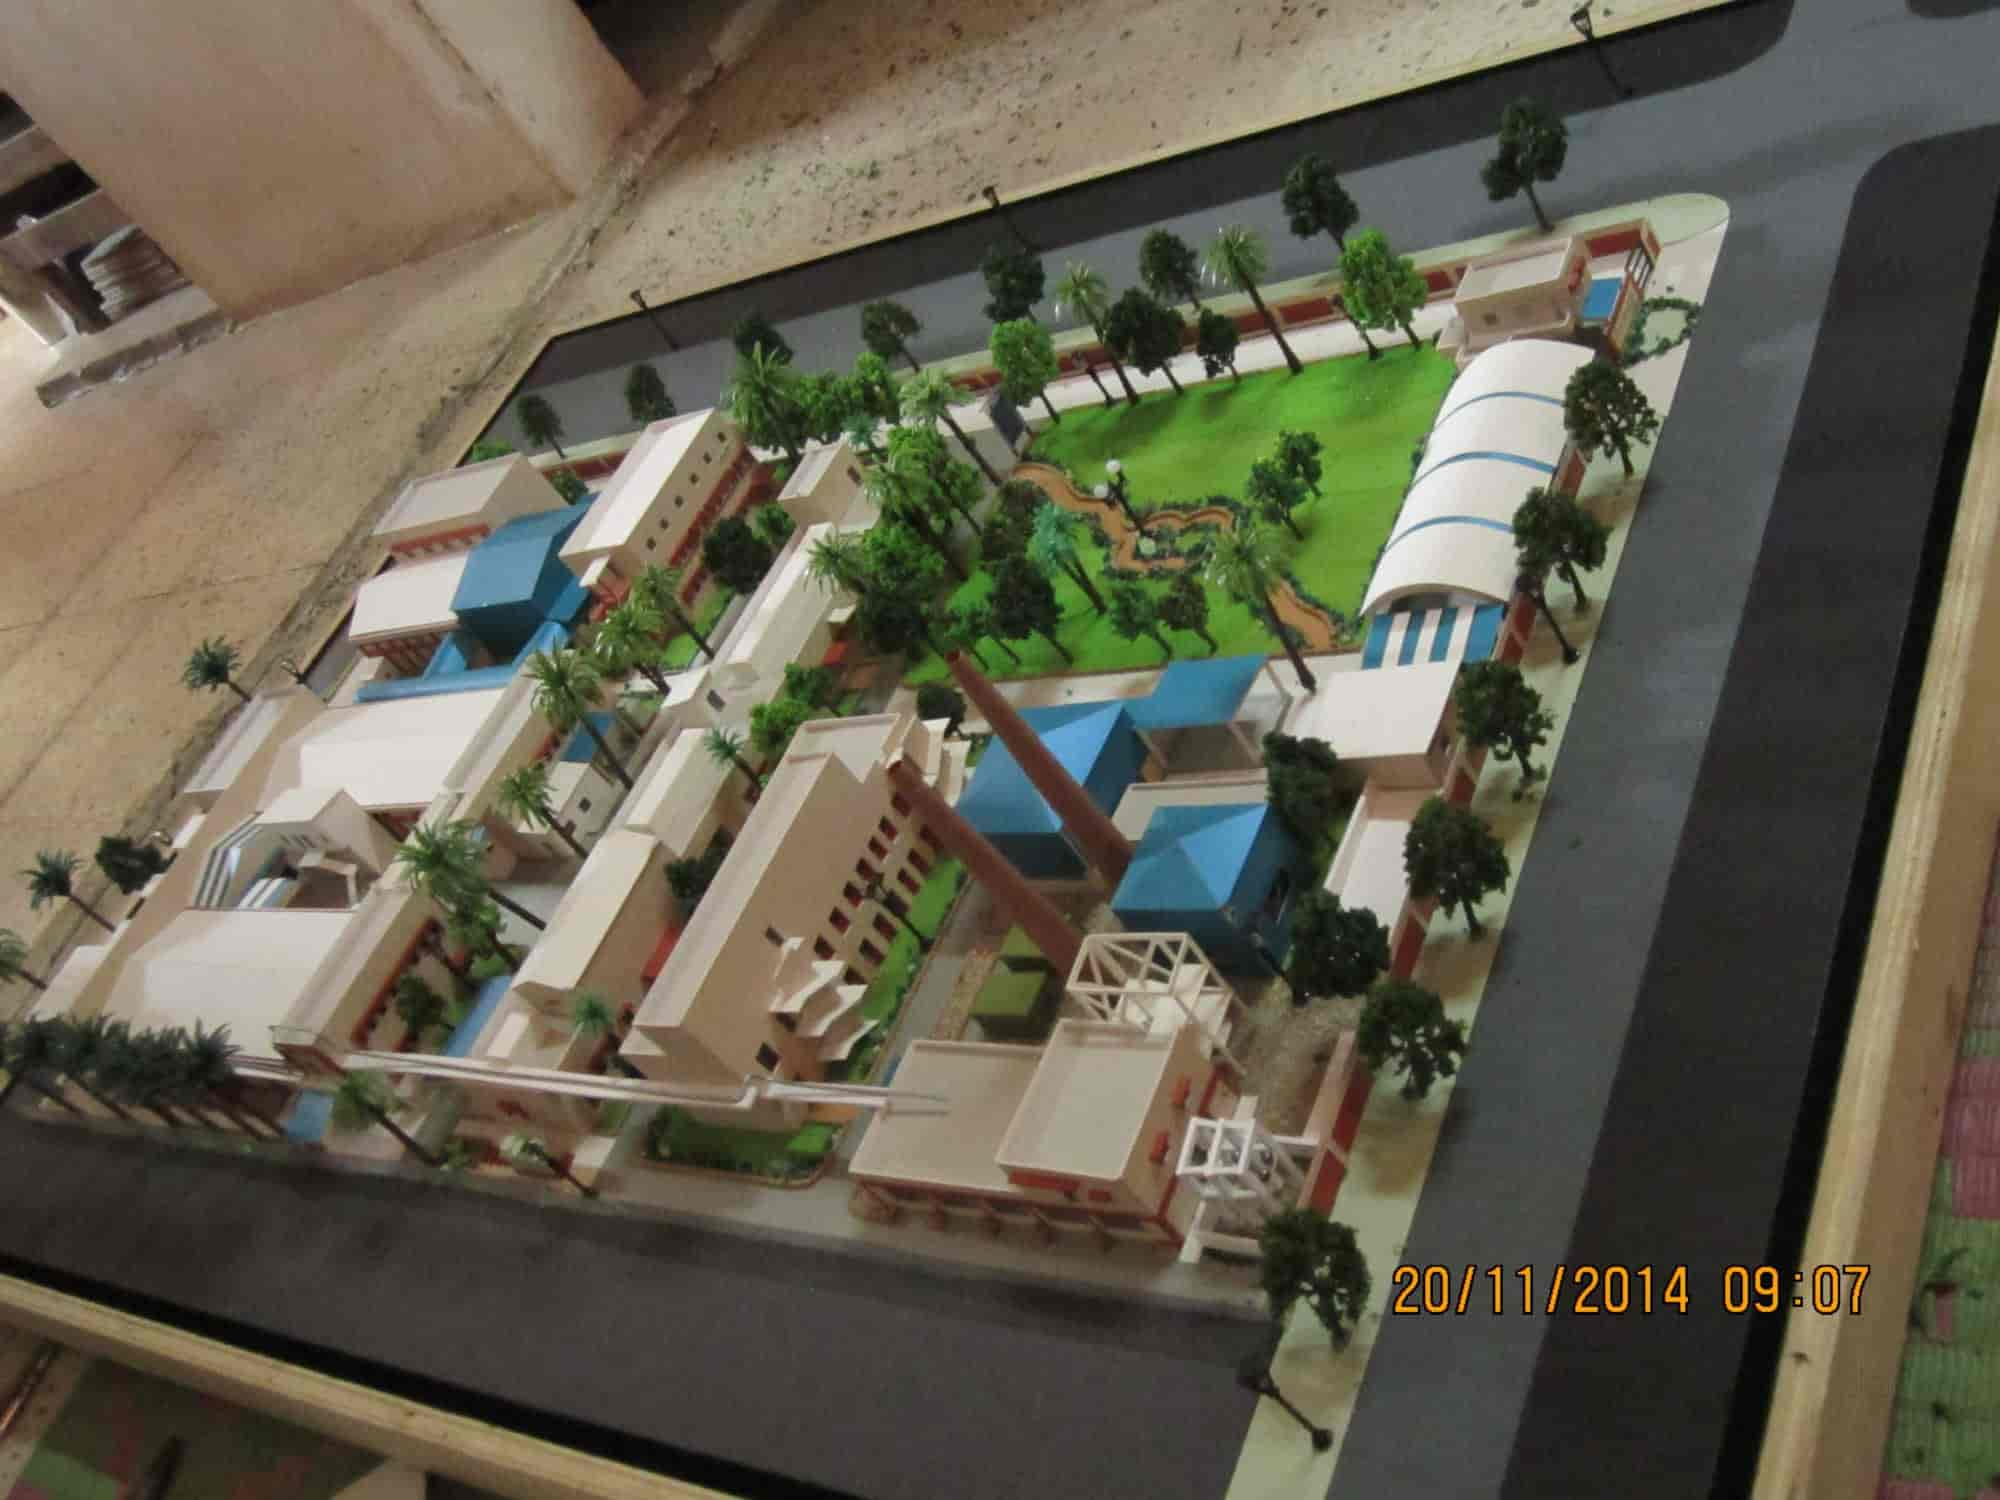 Architectural Model Maker & Auto Cad Works, Waghodia Road